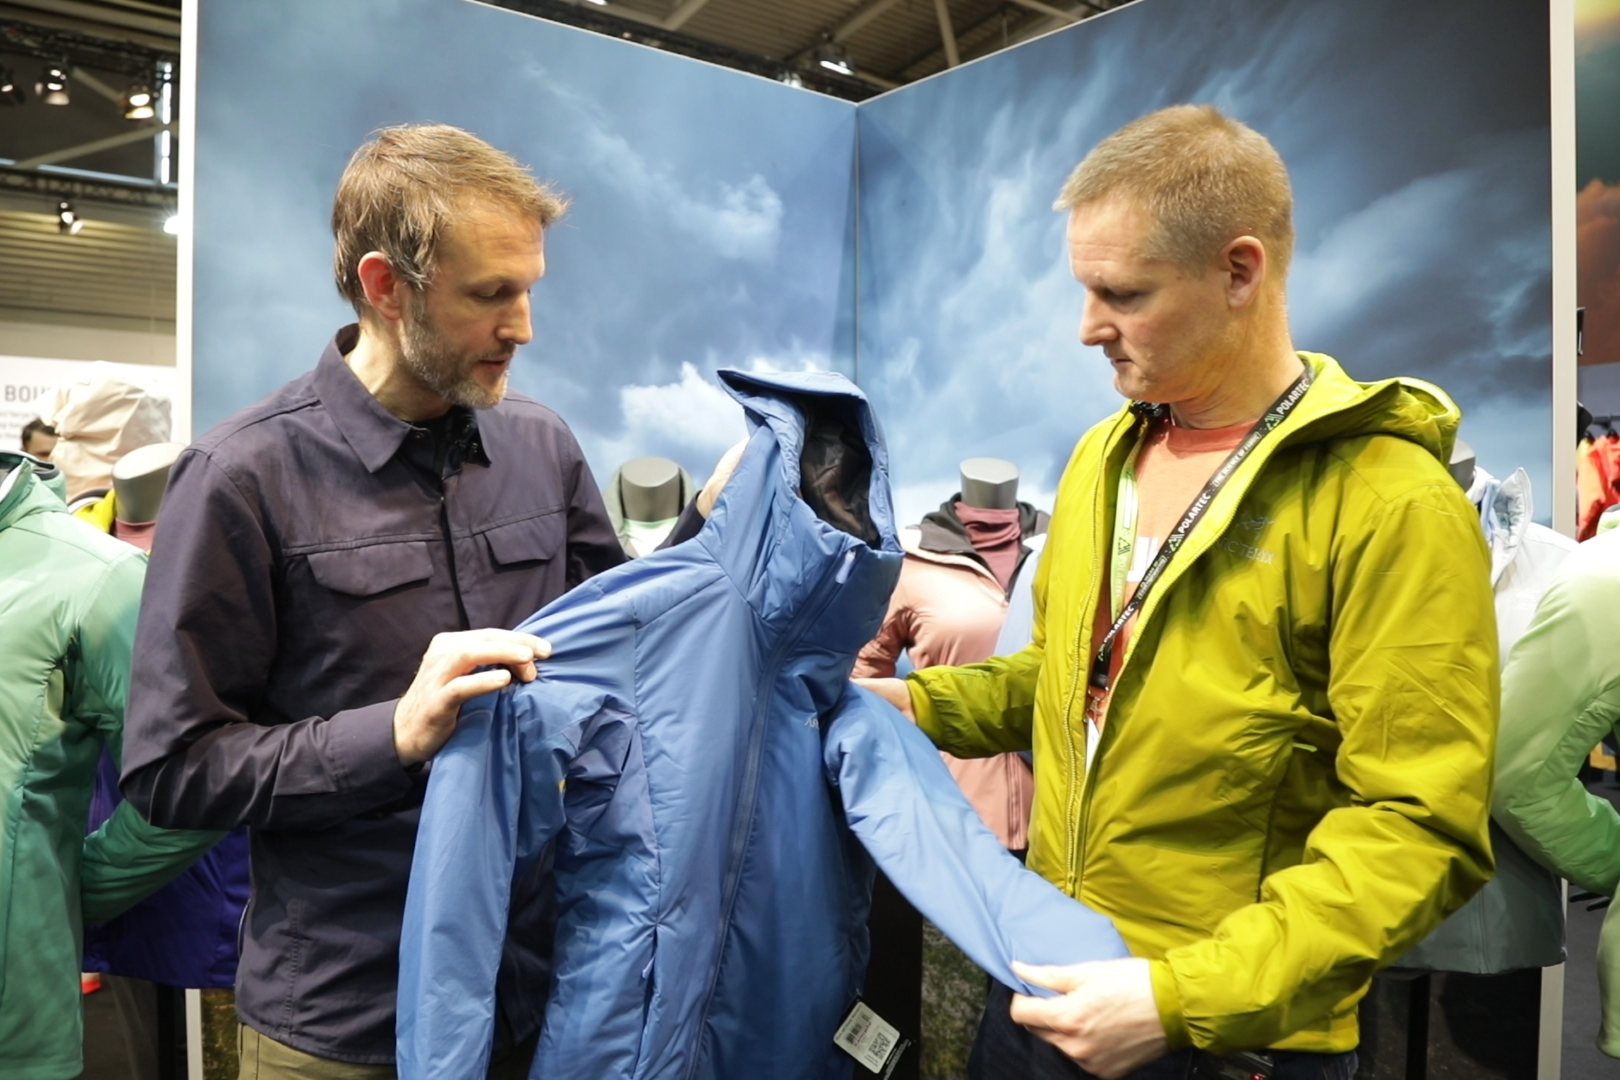 SHOW REPORT: ISPO 2020 - New Clothing